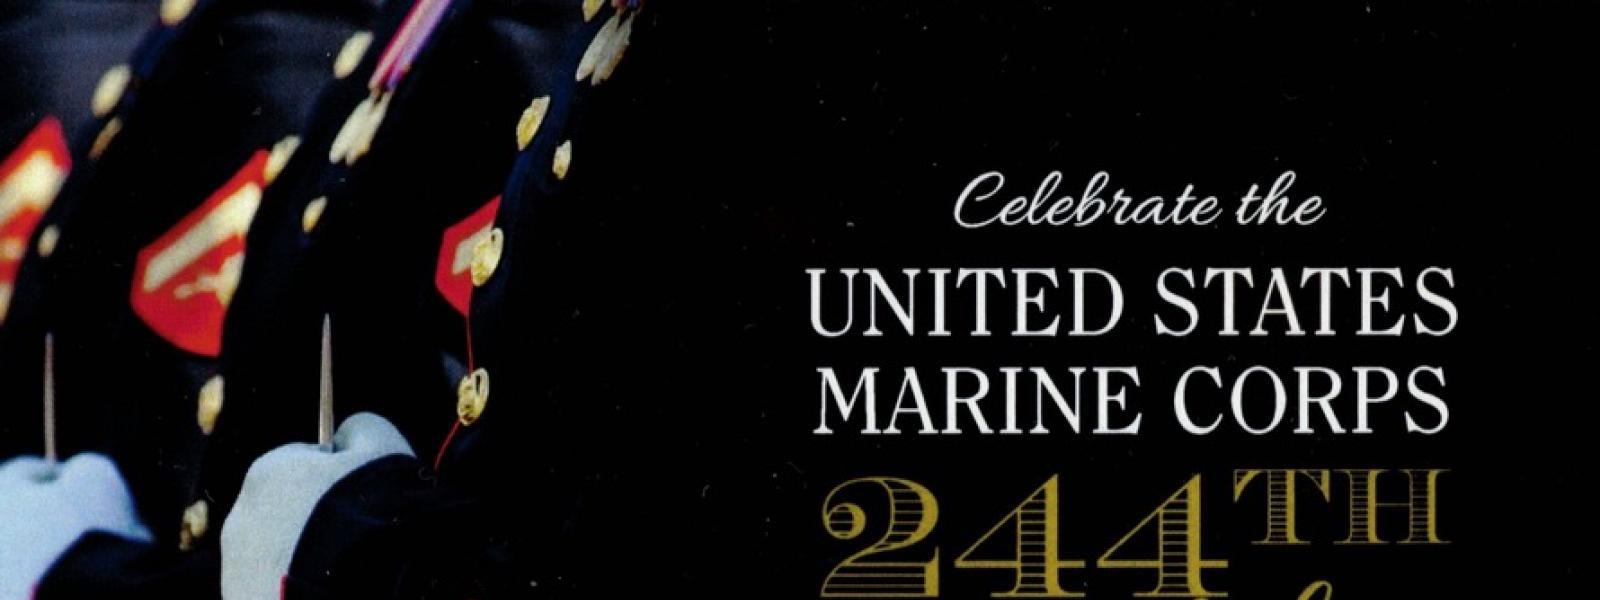 MEB Marine Corps Birthday Luncheon